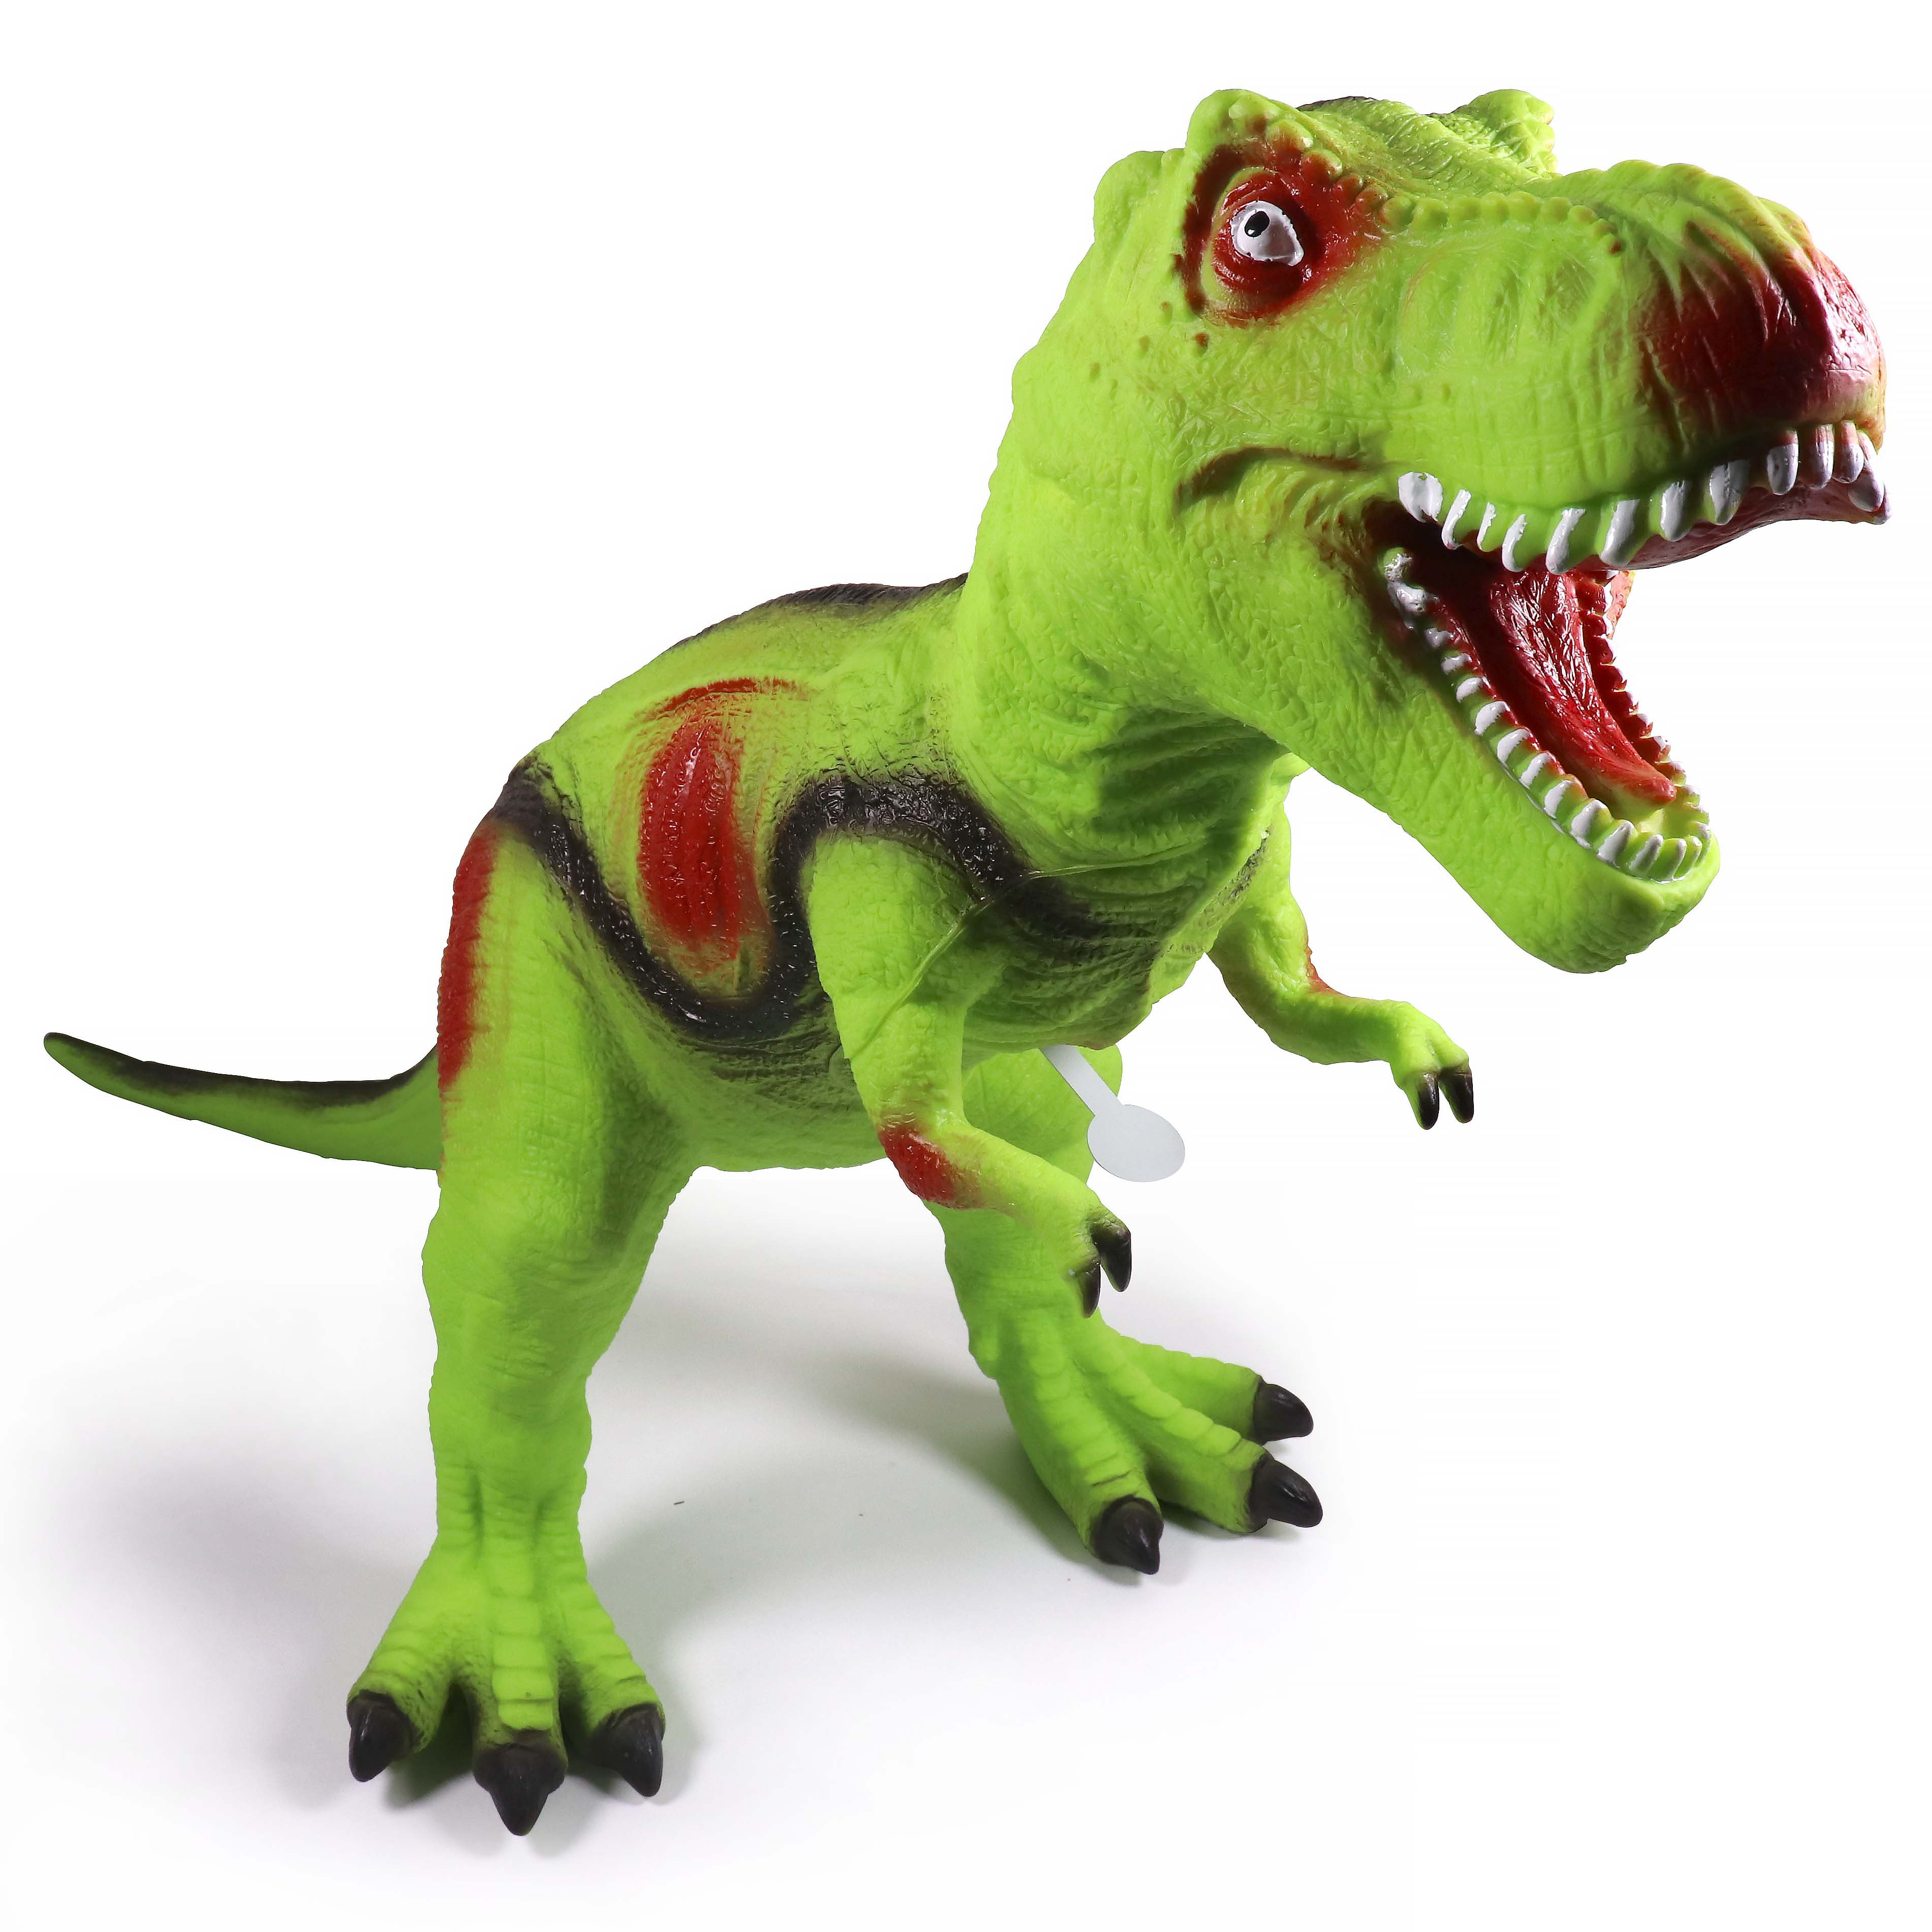 Jurassic Park Large Dinosaur Toys Model for Child Sound Dragon Toy for Boys Animal Action Play